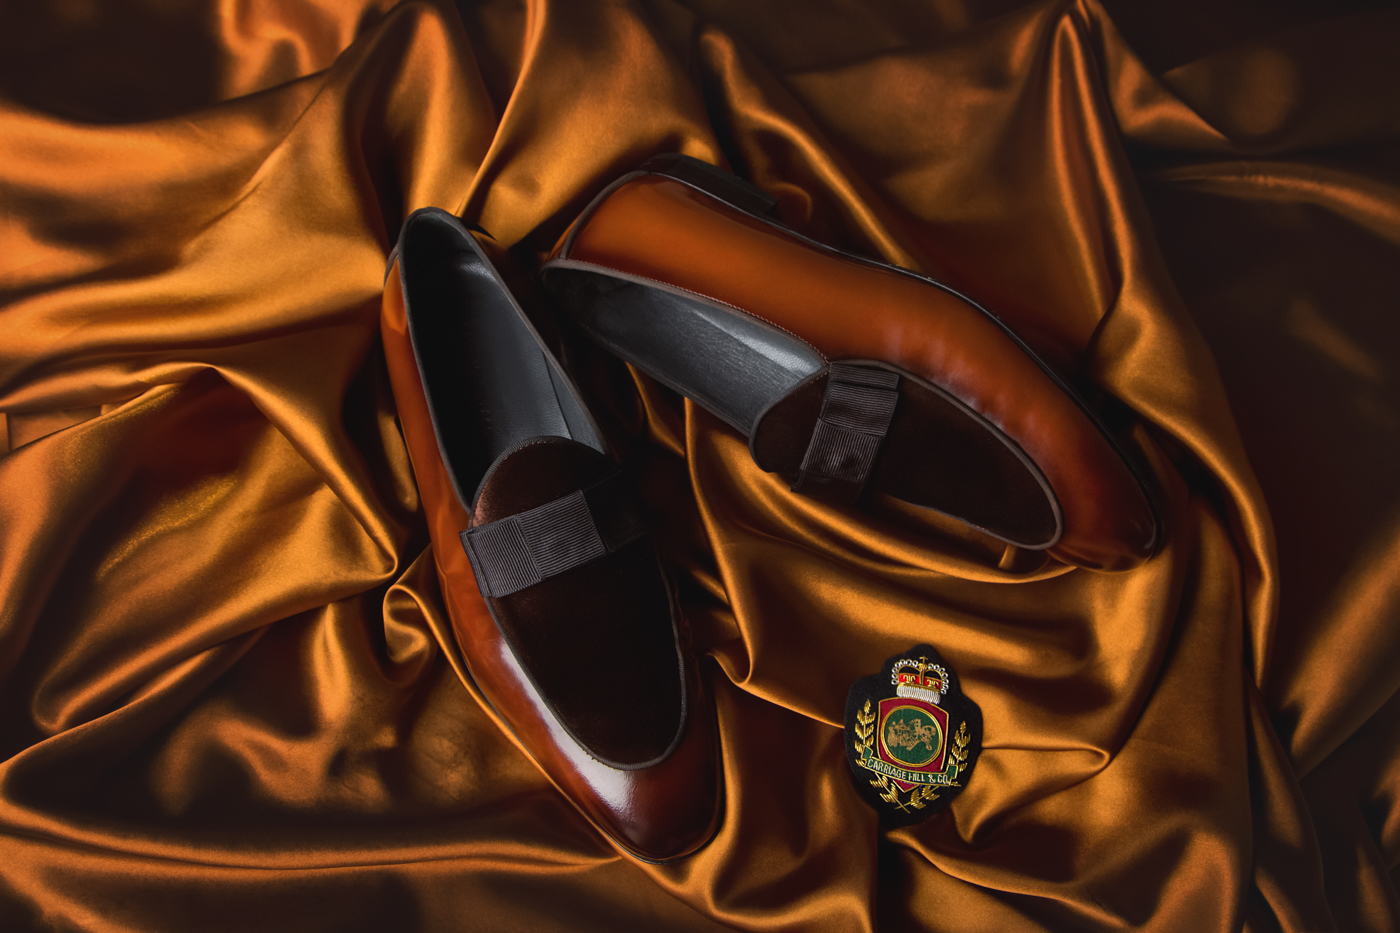 shoes-shoes-shoes-commercial-product-photography-ksenia-pro-photography-8